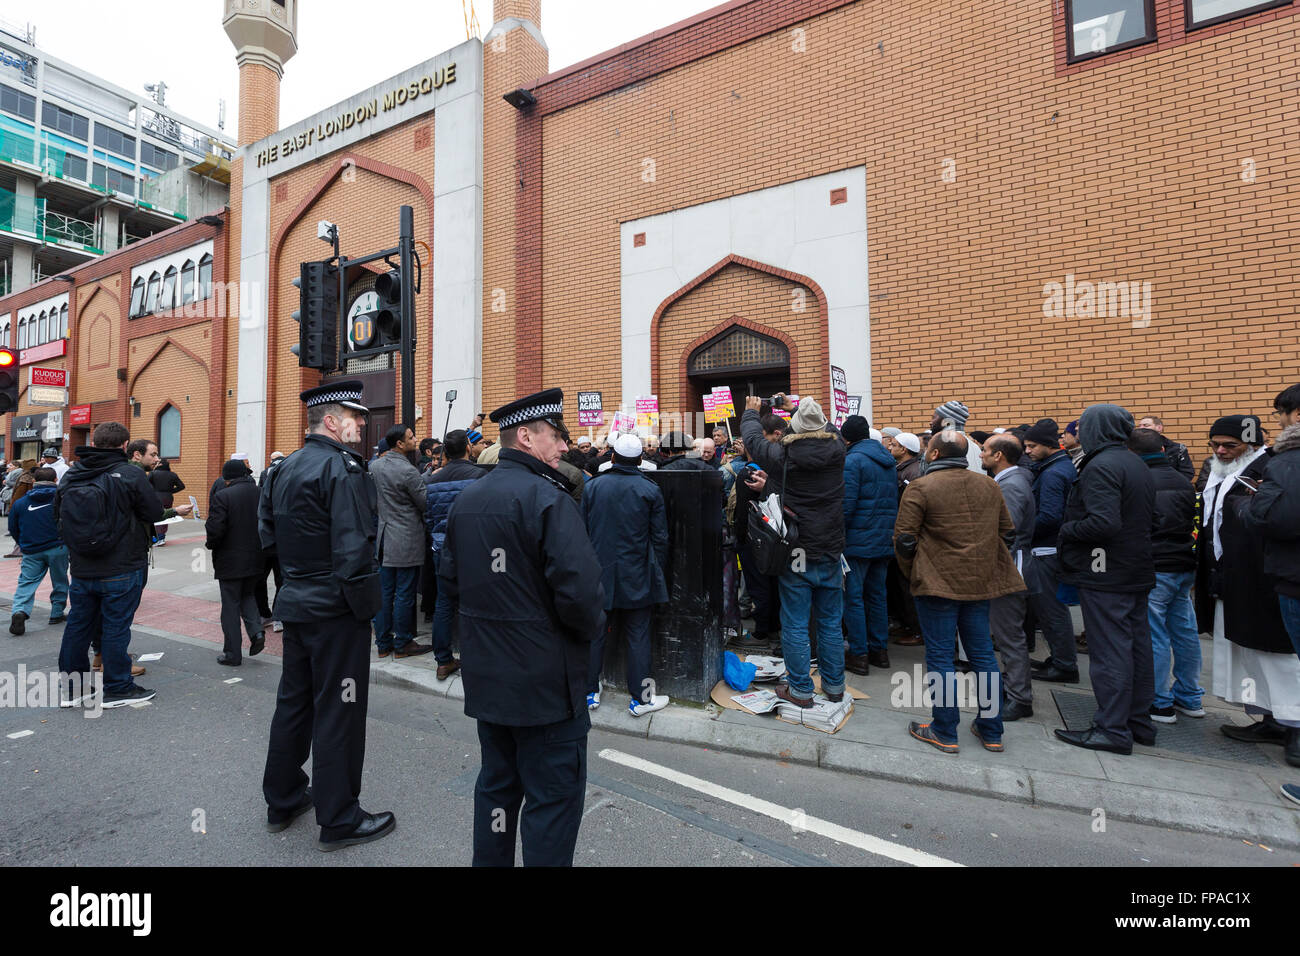 London, UK. 18th March 2016. Demonstrators and supporters of the East London Mosque in Whitechapel, Tower Hamlets, Stock Photo